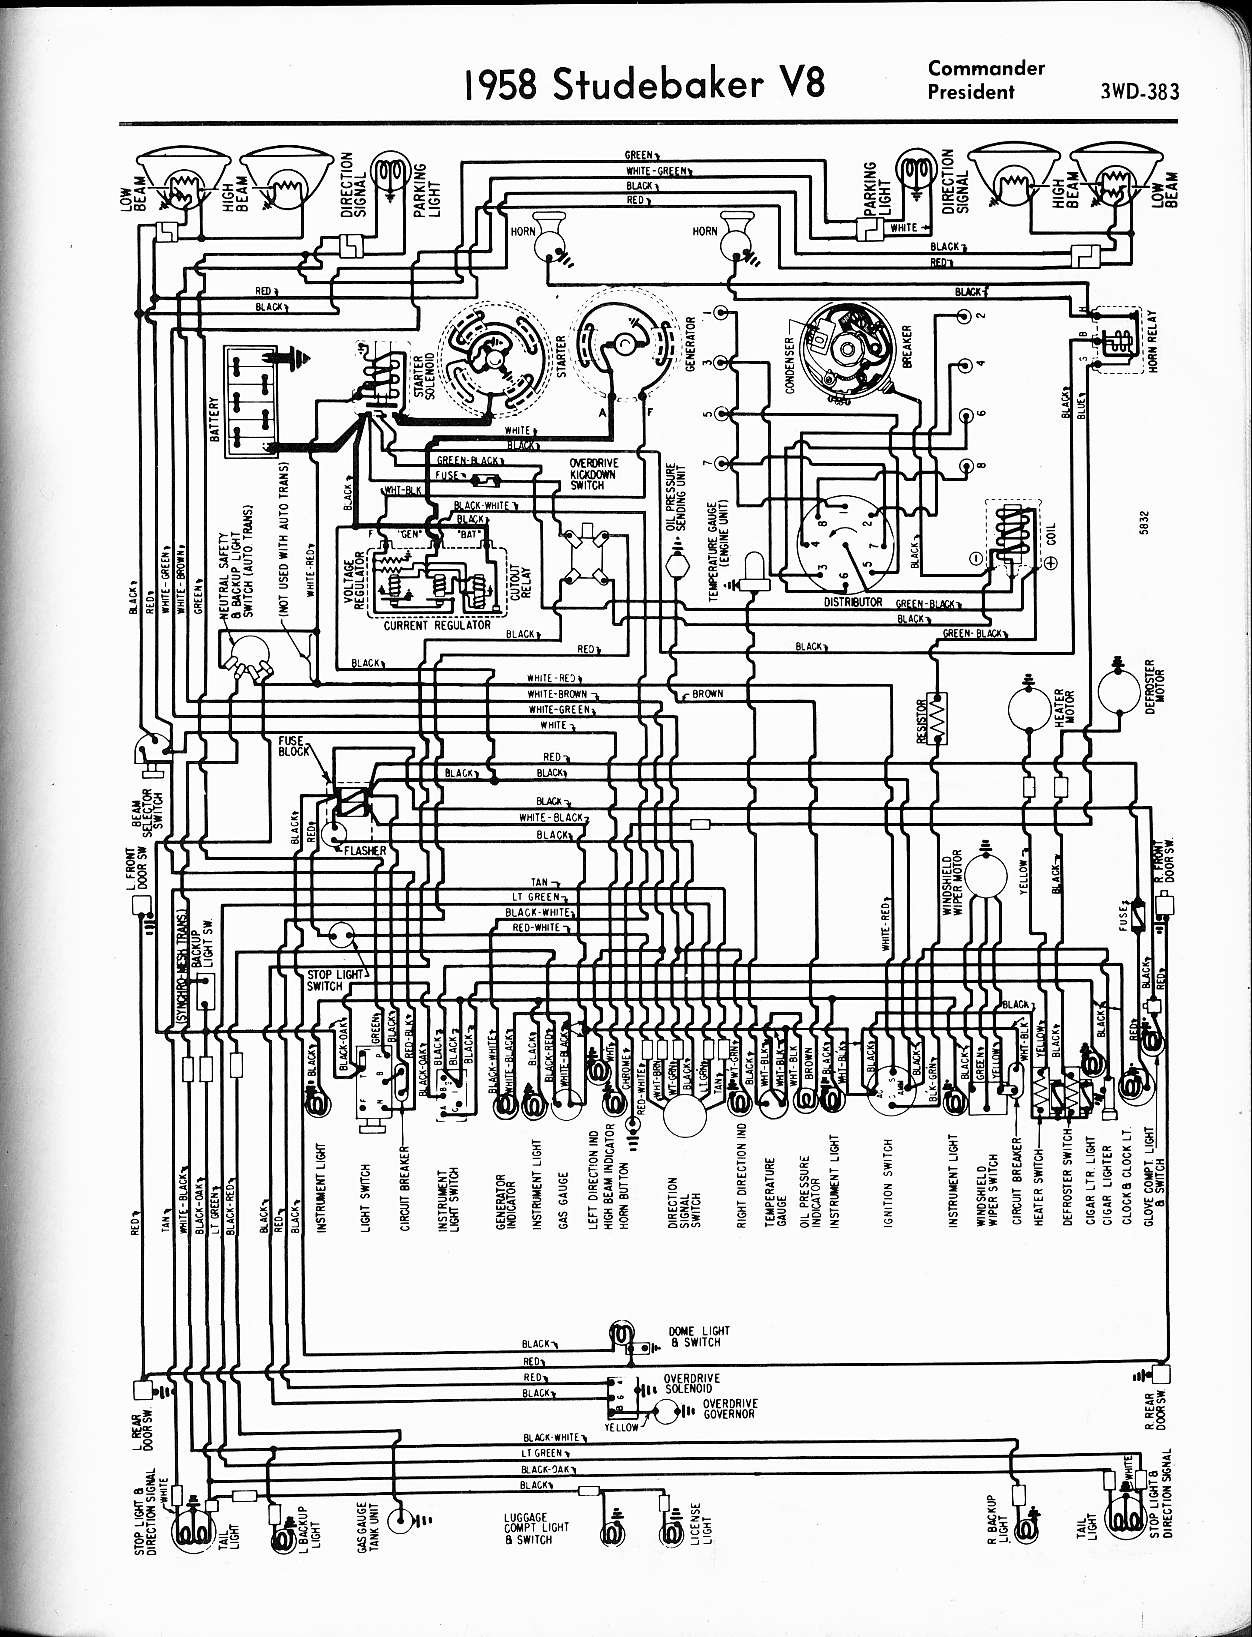 Heating Ventilation And Air Condition besides Connect 1 Power Source To 2 Sets Of 2 Light Switch further Trailer wiring diagram moreover Honeywell Rth221 besides Hvac Thermostat Wiring Diagram. on old fan relay wiring diagram simple